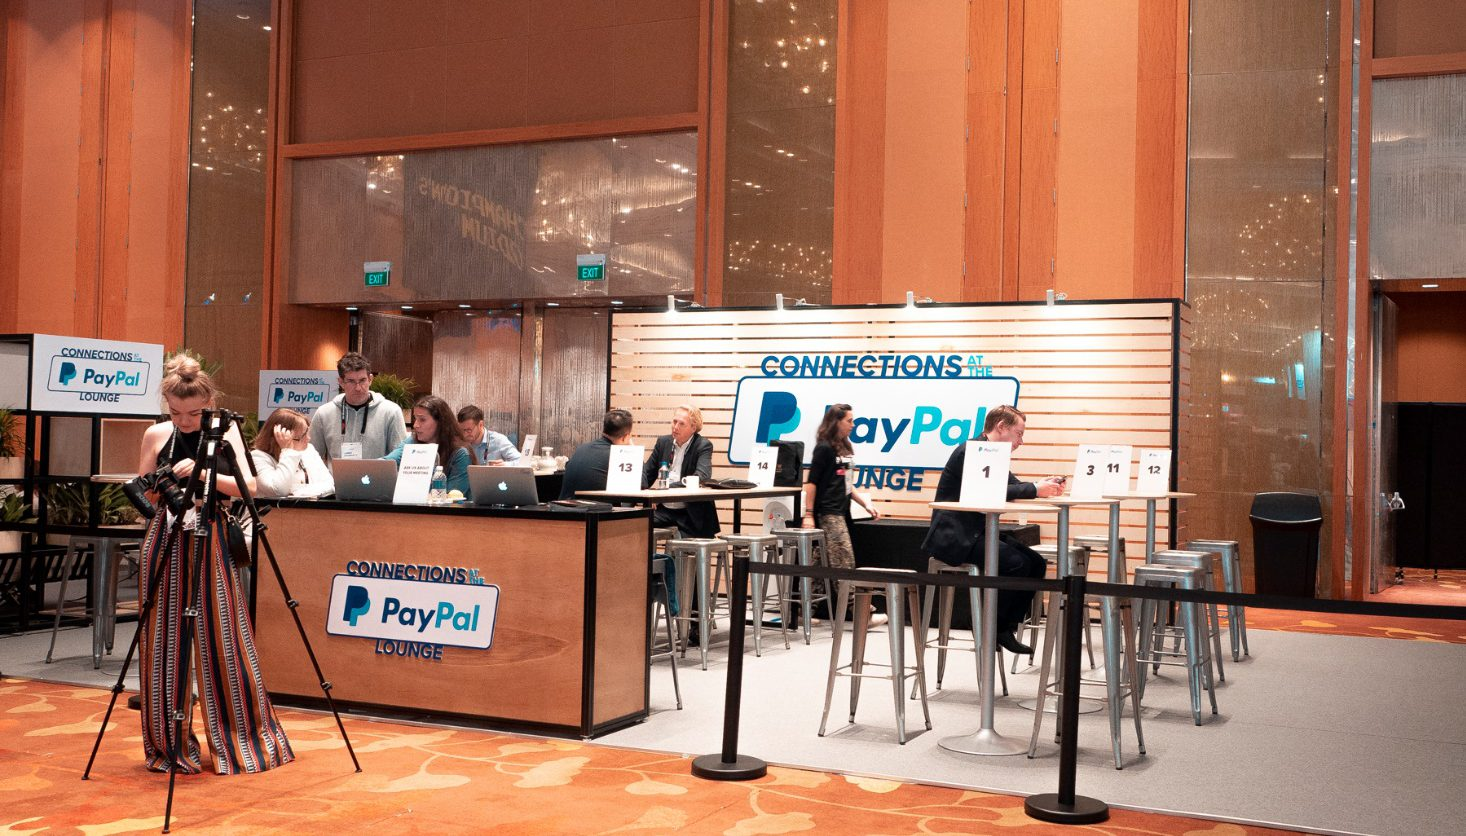 Paypal booth at a conference